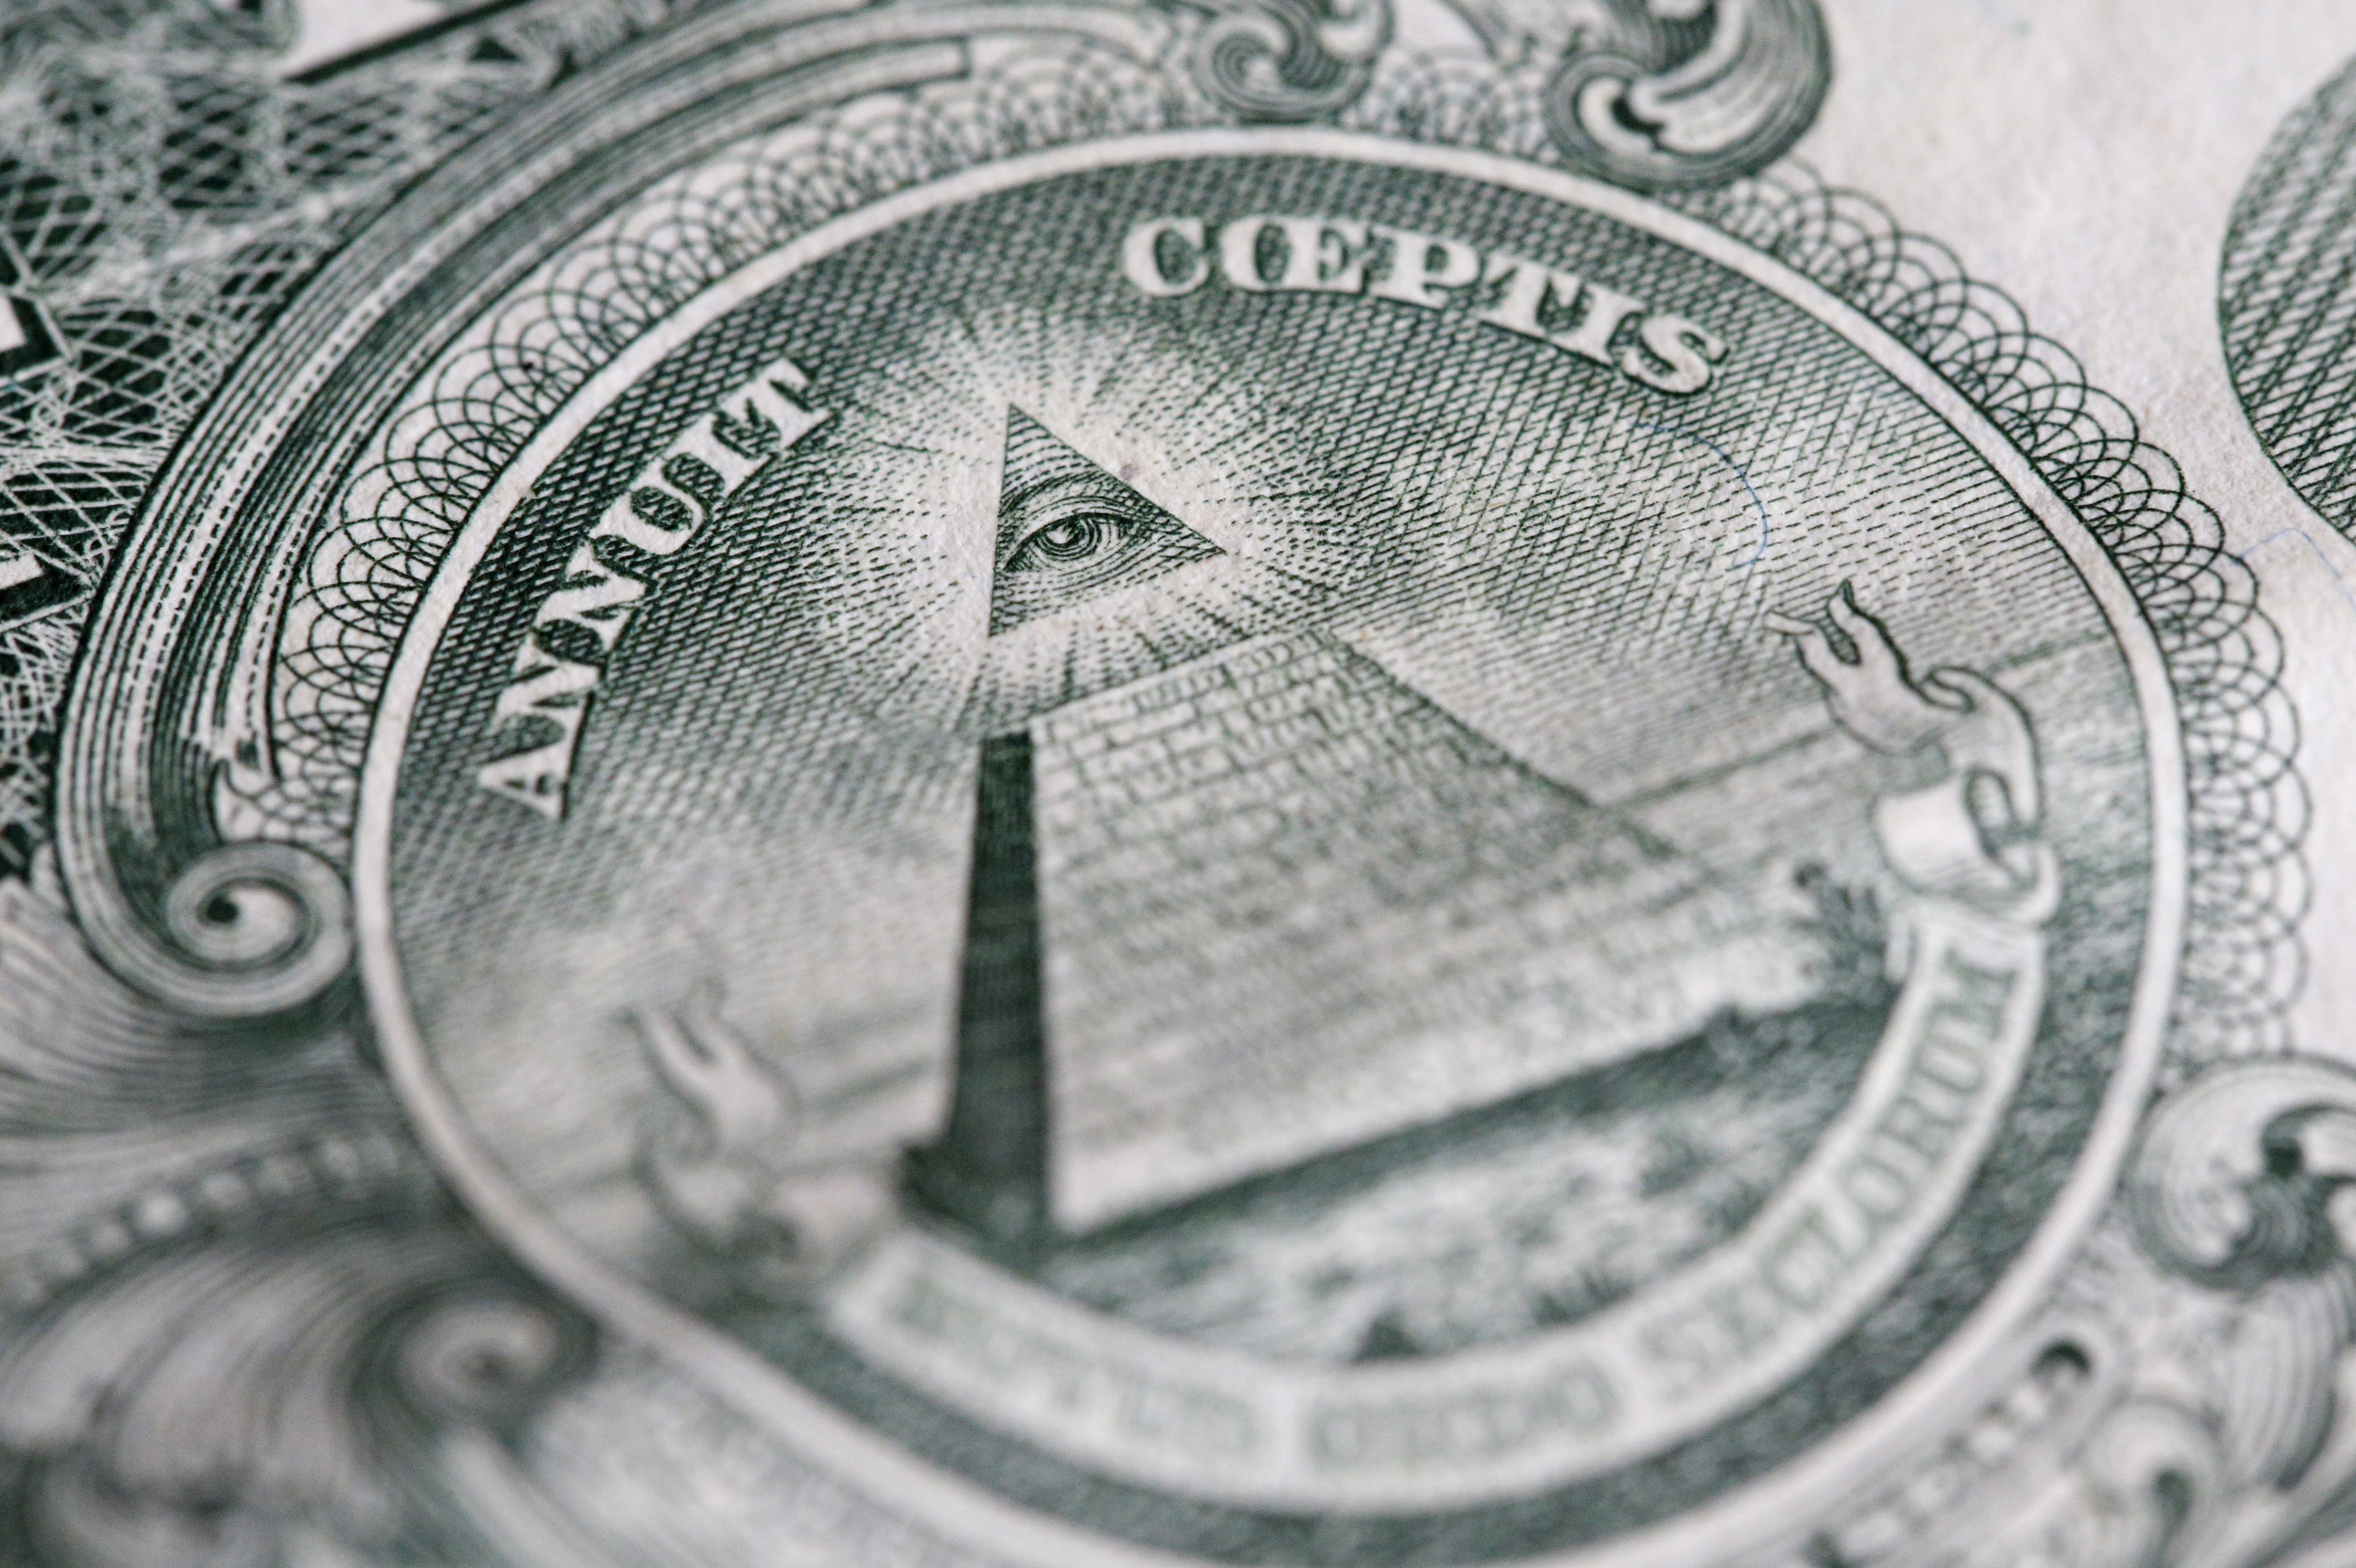 The reverse of the United States one-dollar bill depicting a Pyramid with 13 steps and the Eye of Providence.